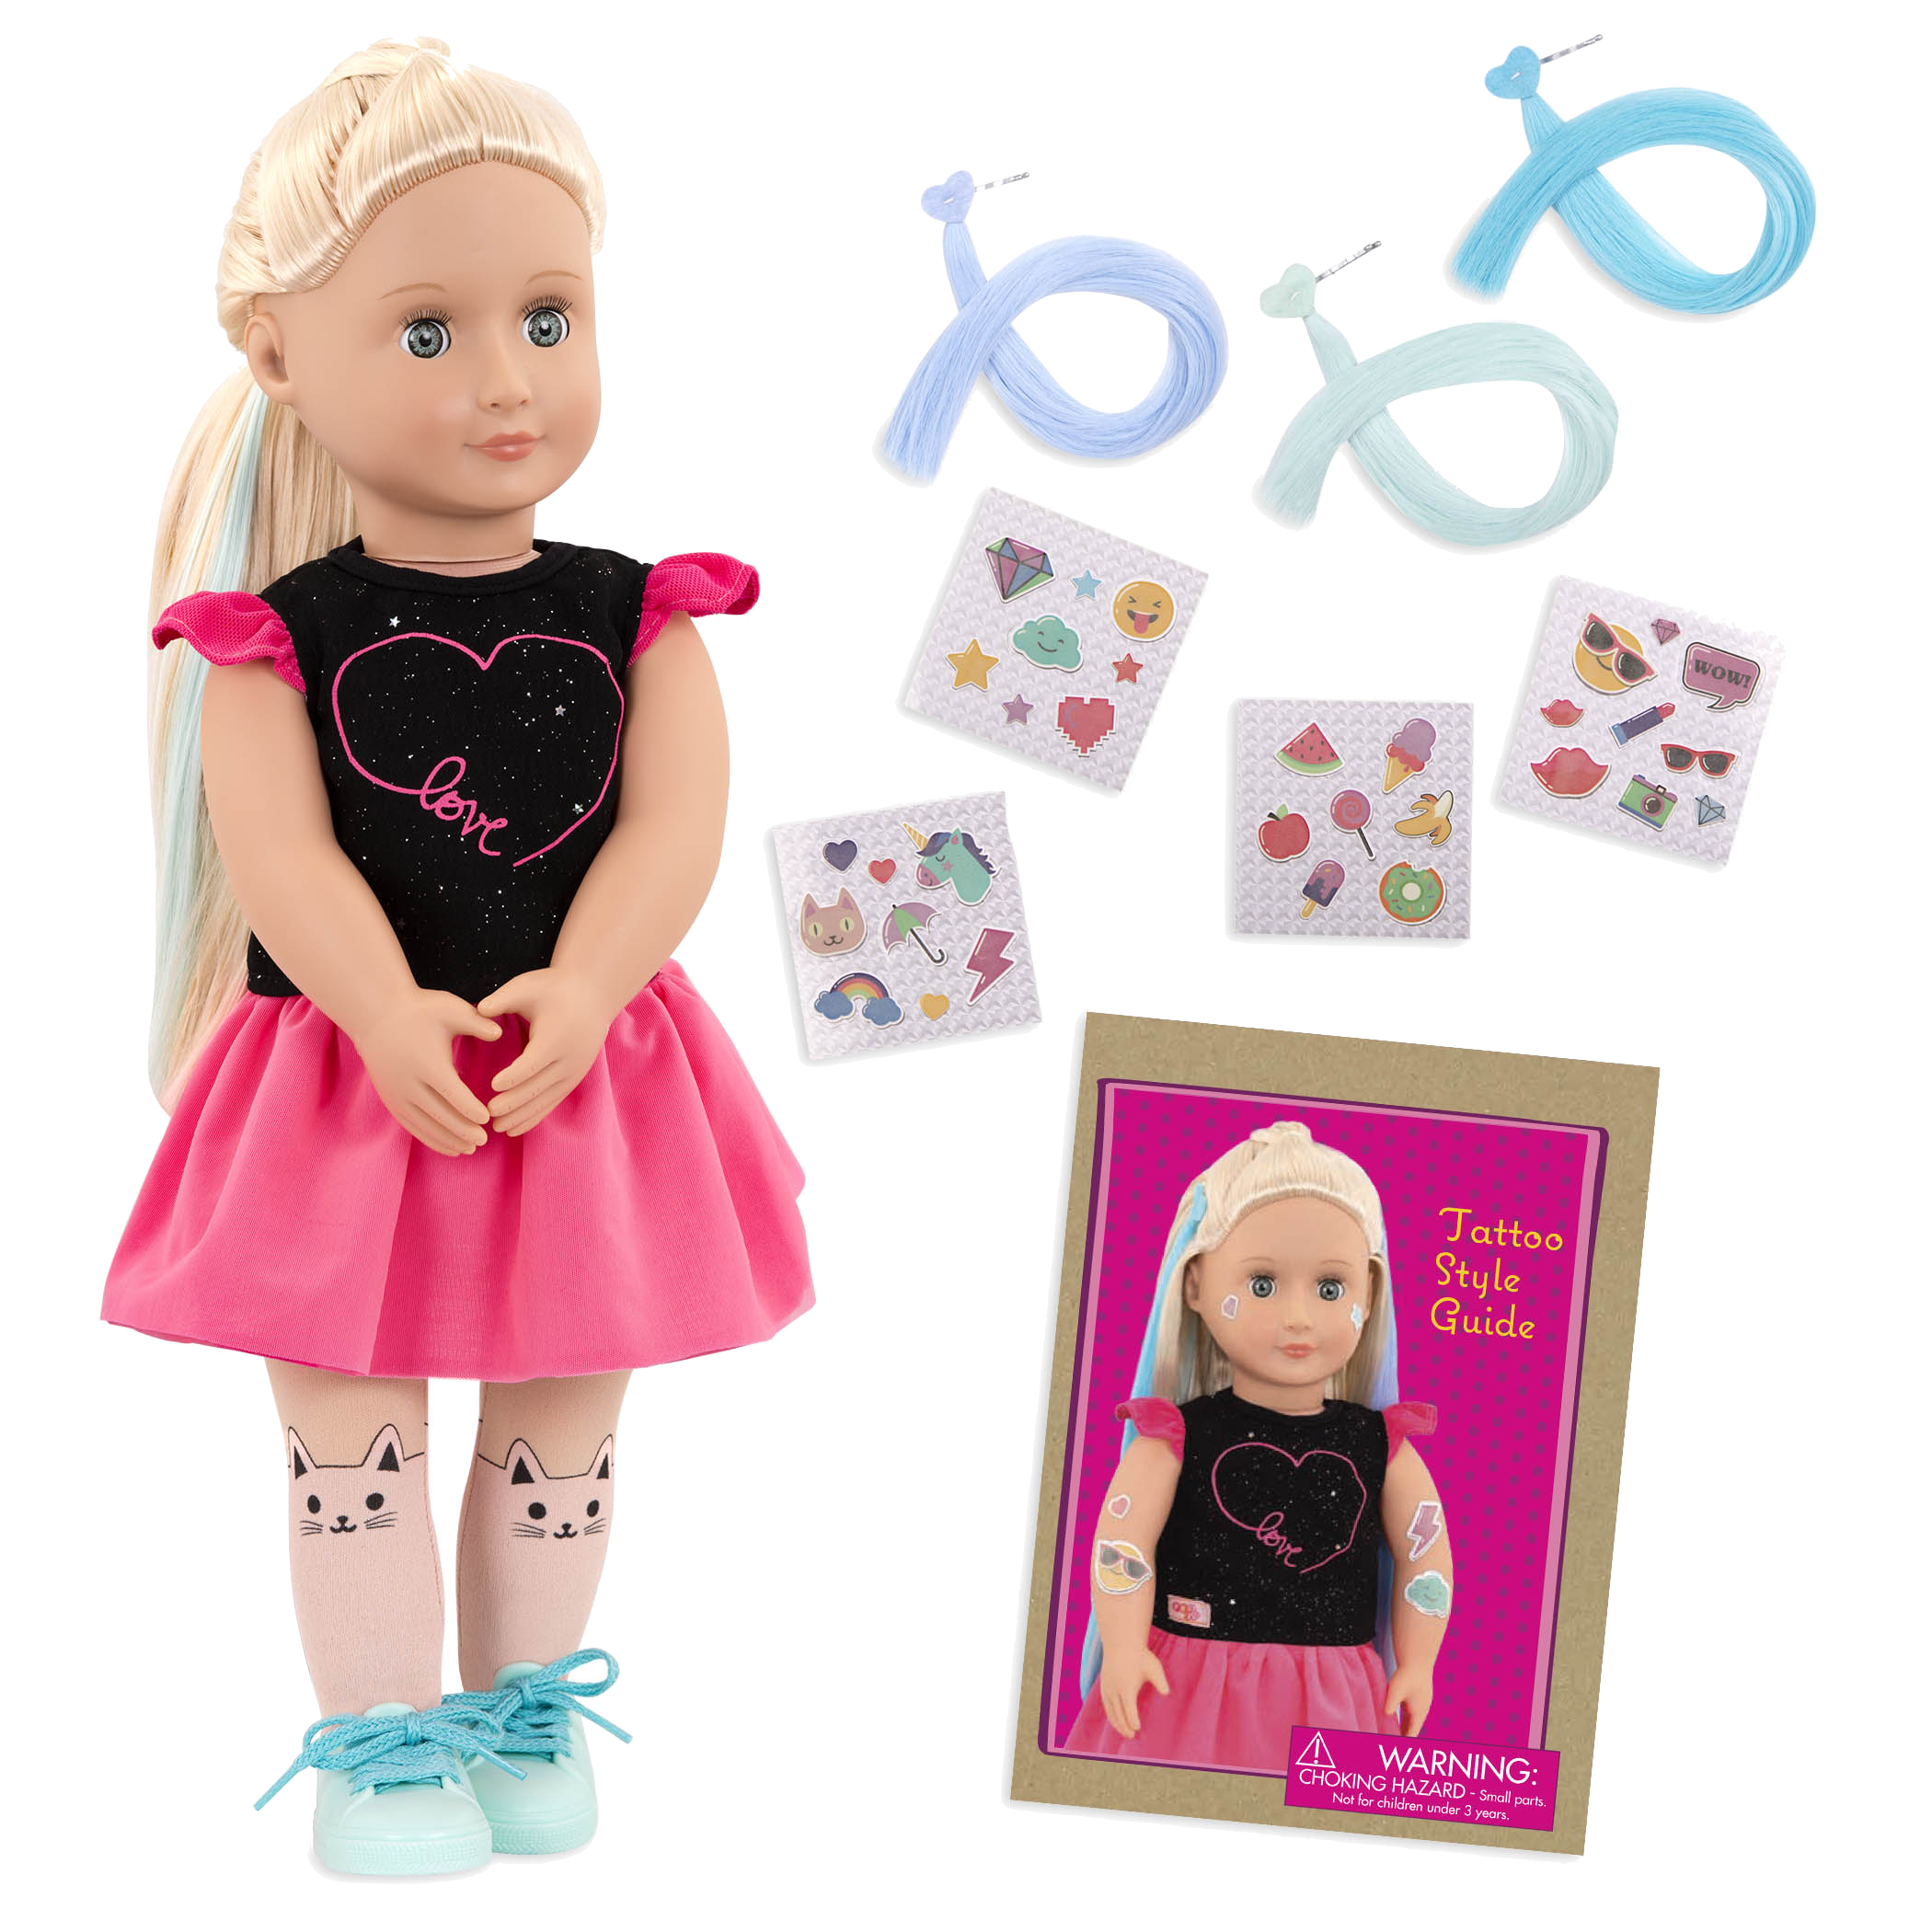 Luana 18-inch Glow in the Dark Tattoo Doll